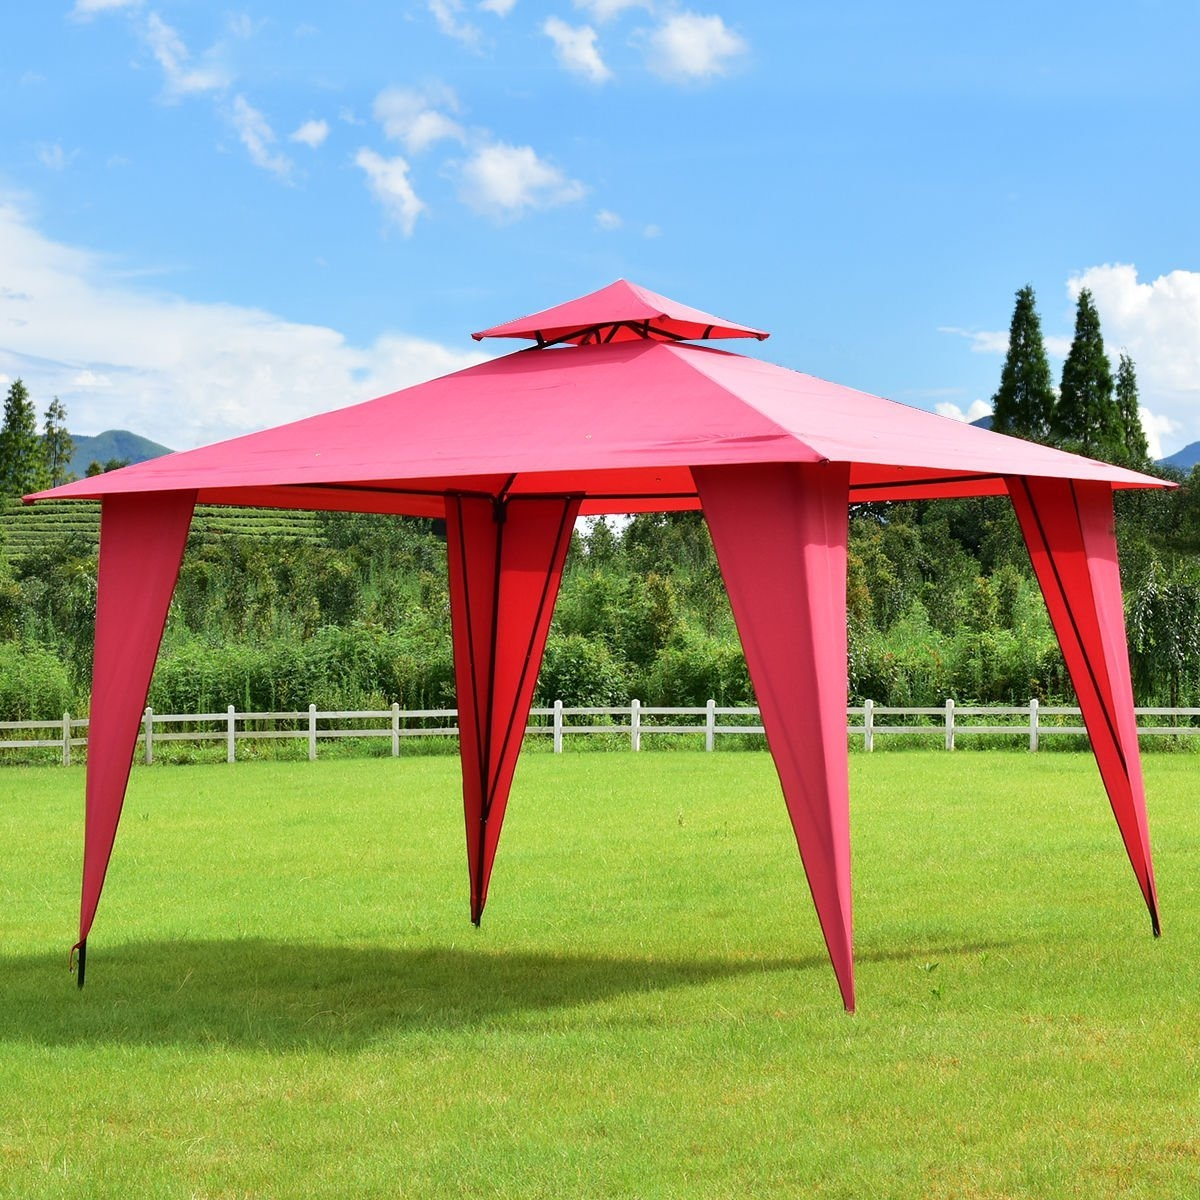 New MTN-G MTN-G 2-Tier 11x11 Gazebo Canopy Shelter Patio Party Tent Outdoor Awning Burgundy by MTN Gearsmith